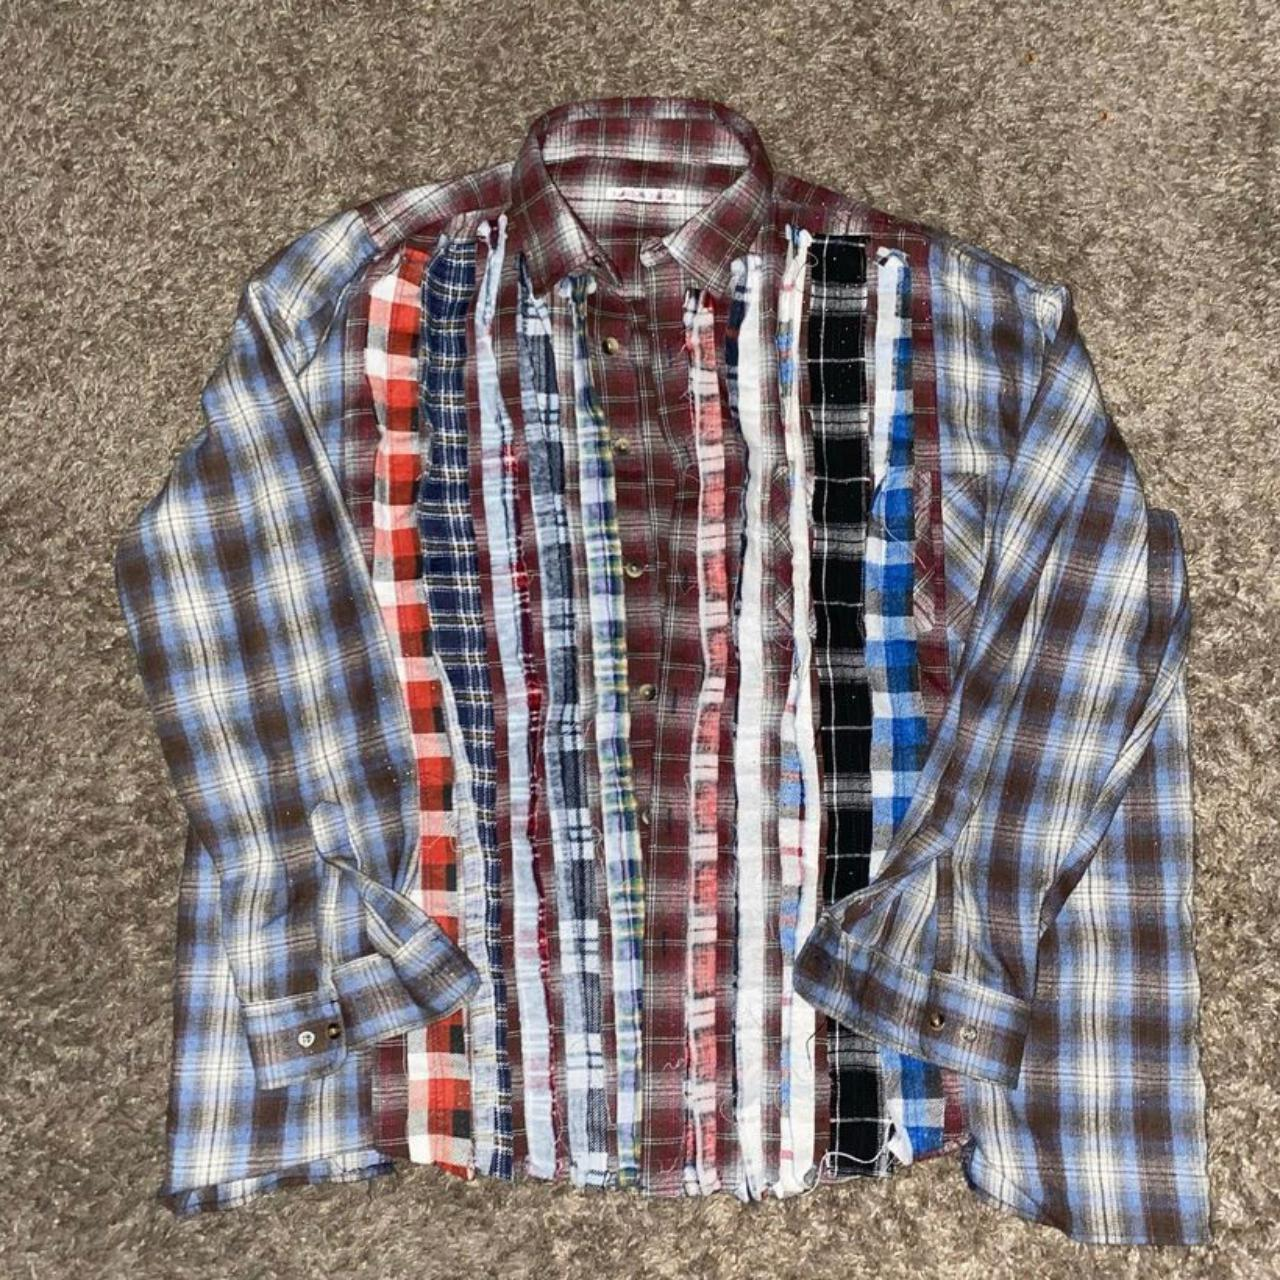 Product Image 1 - needles ribbon flannel 9/10 condition  message before